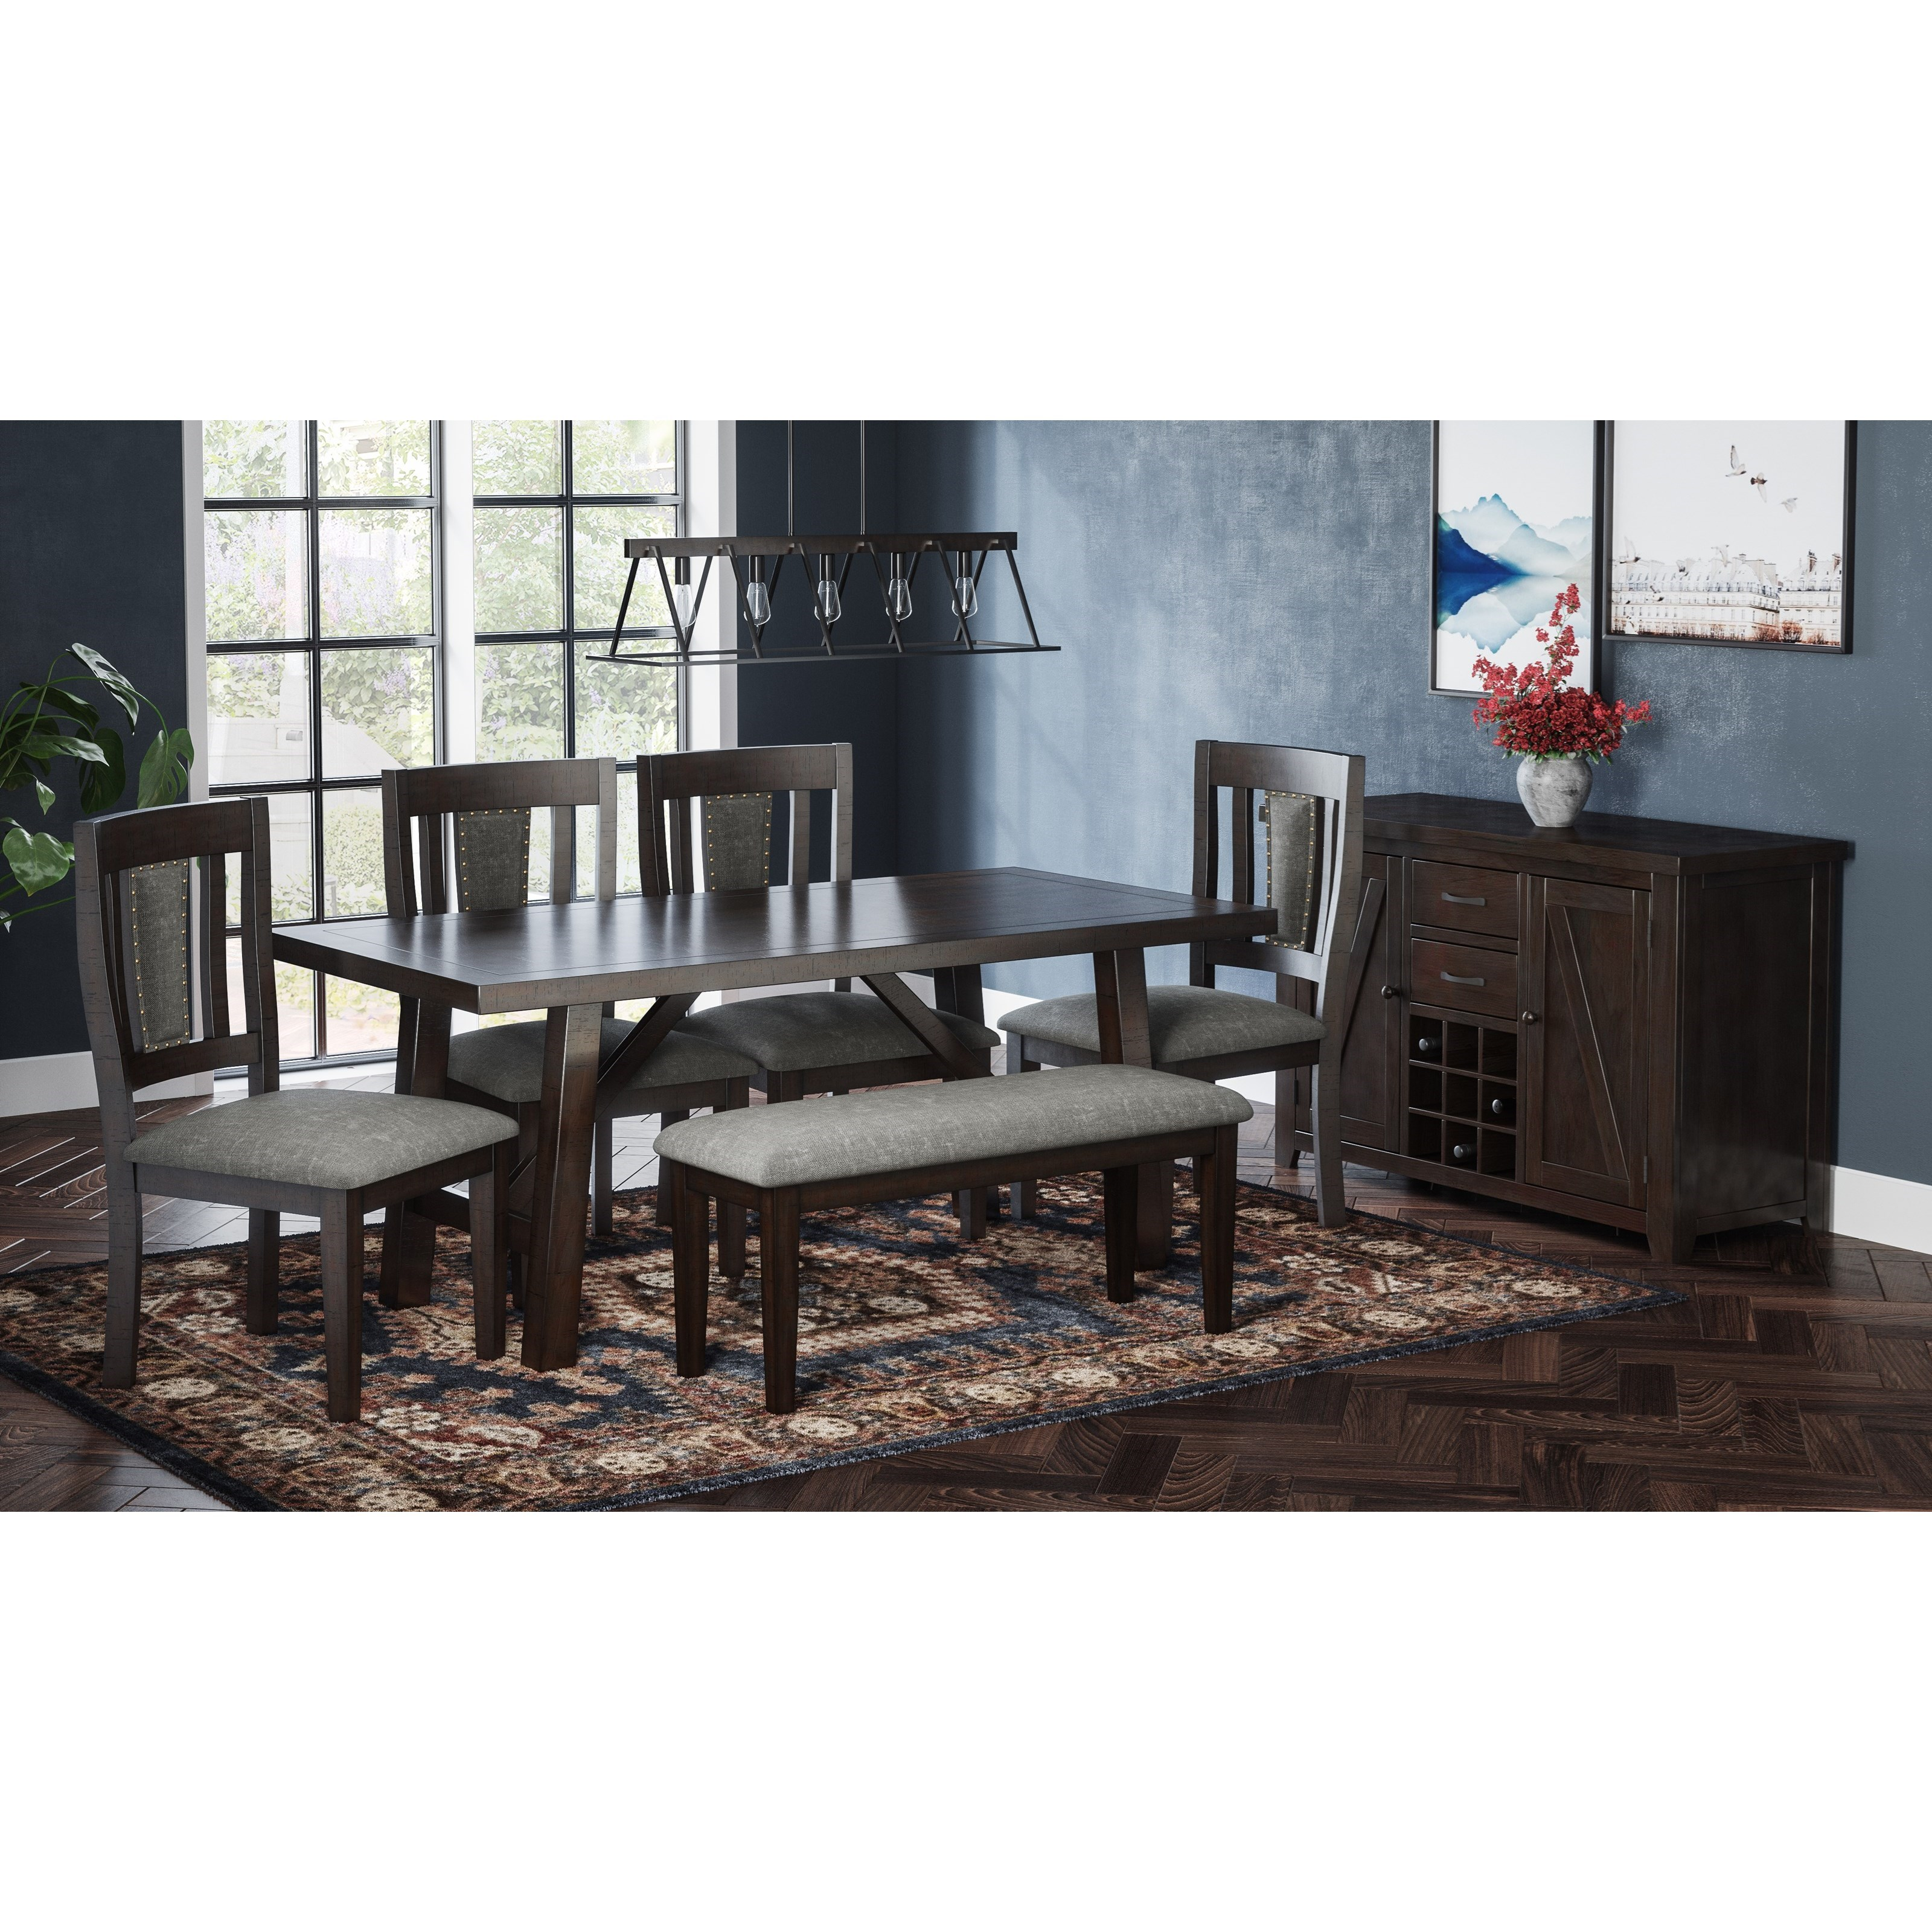 American Rustics Table and Chair Set by Jofran at Value City Furniture